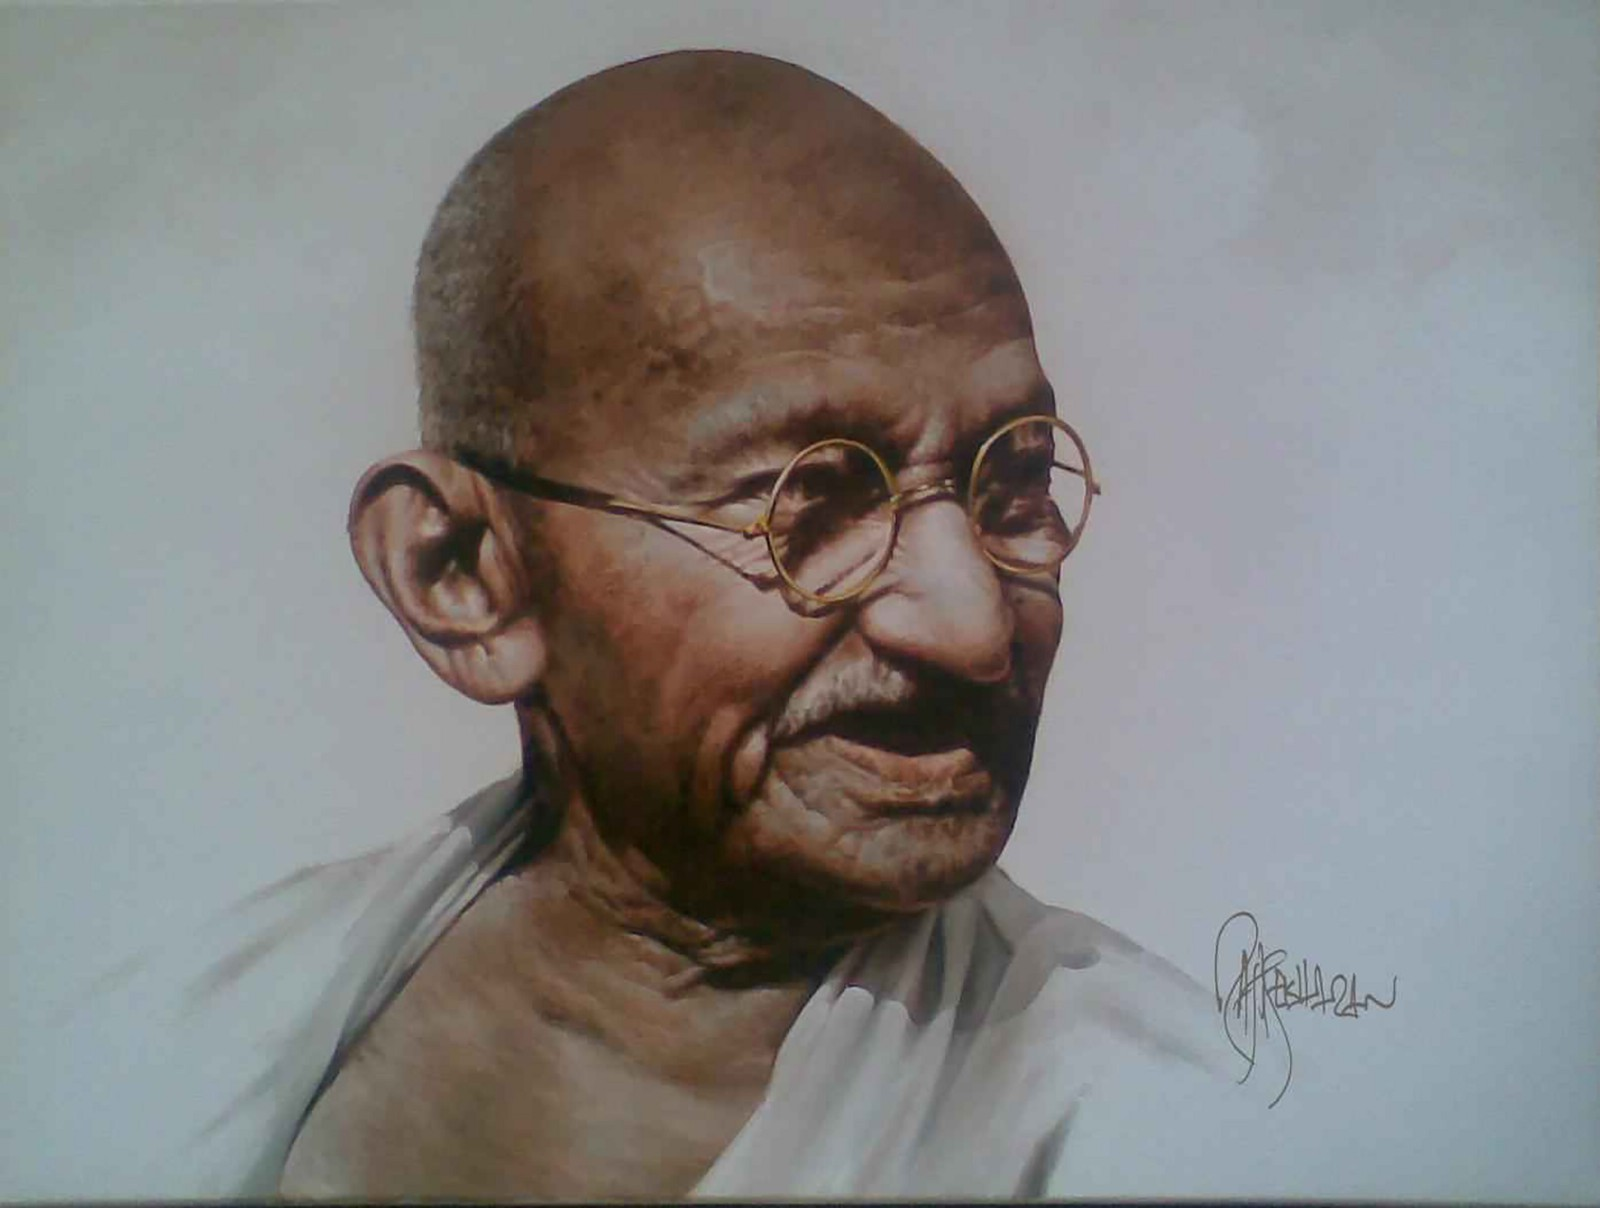 Seventy-Seven Year Old Message From Gandhi to Reach For Your Goals